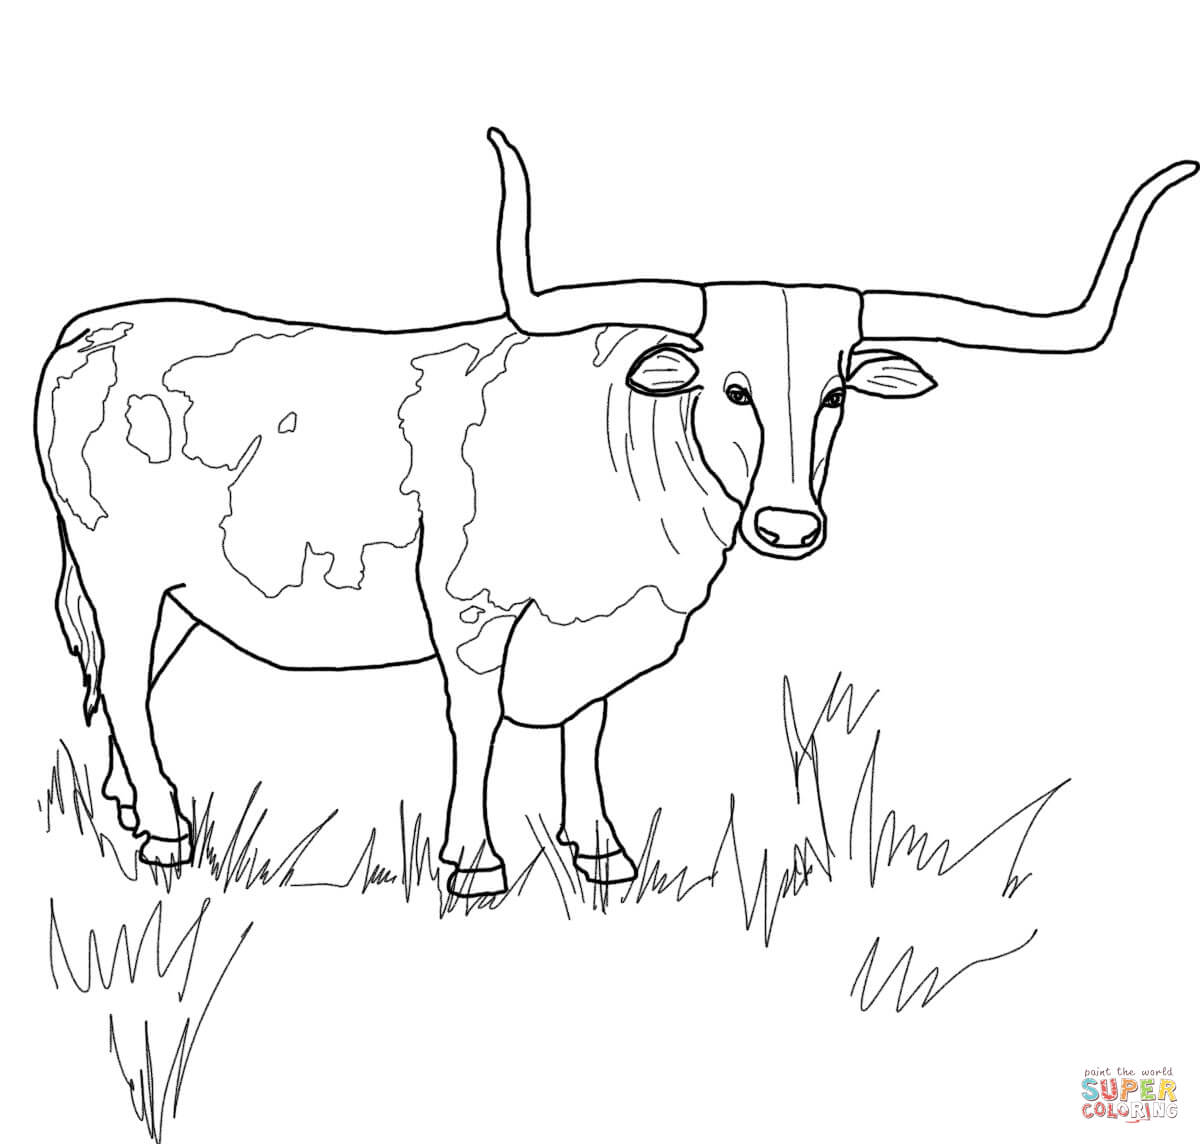 bull-coloring-page-0021-q1